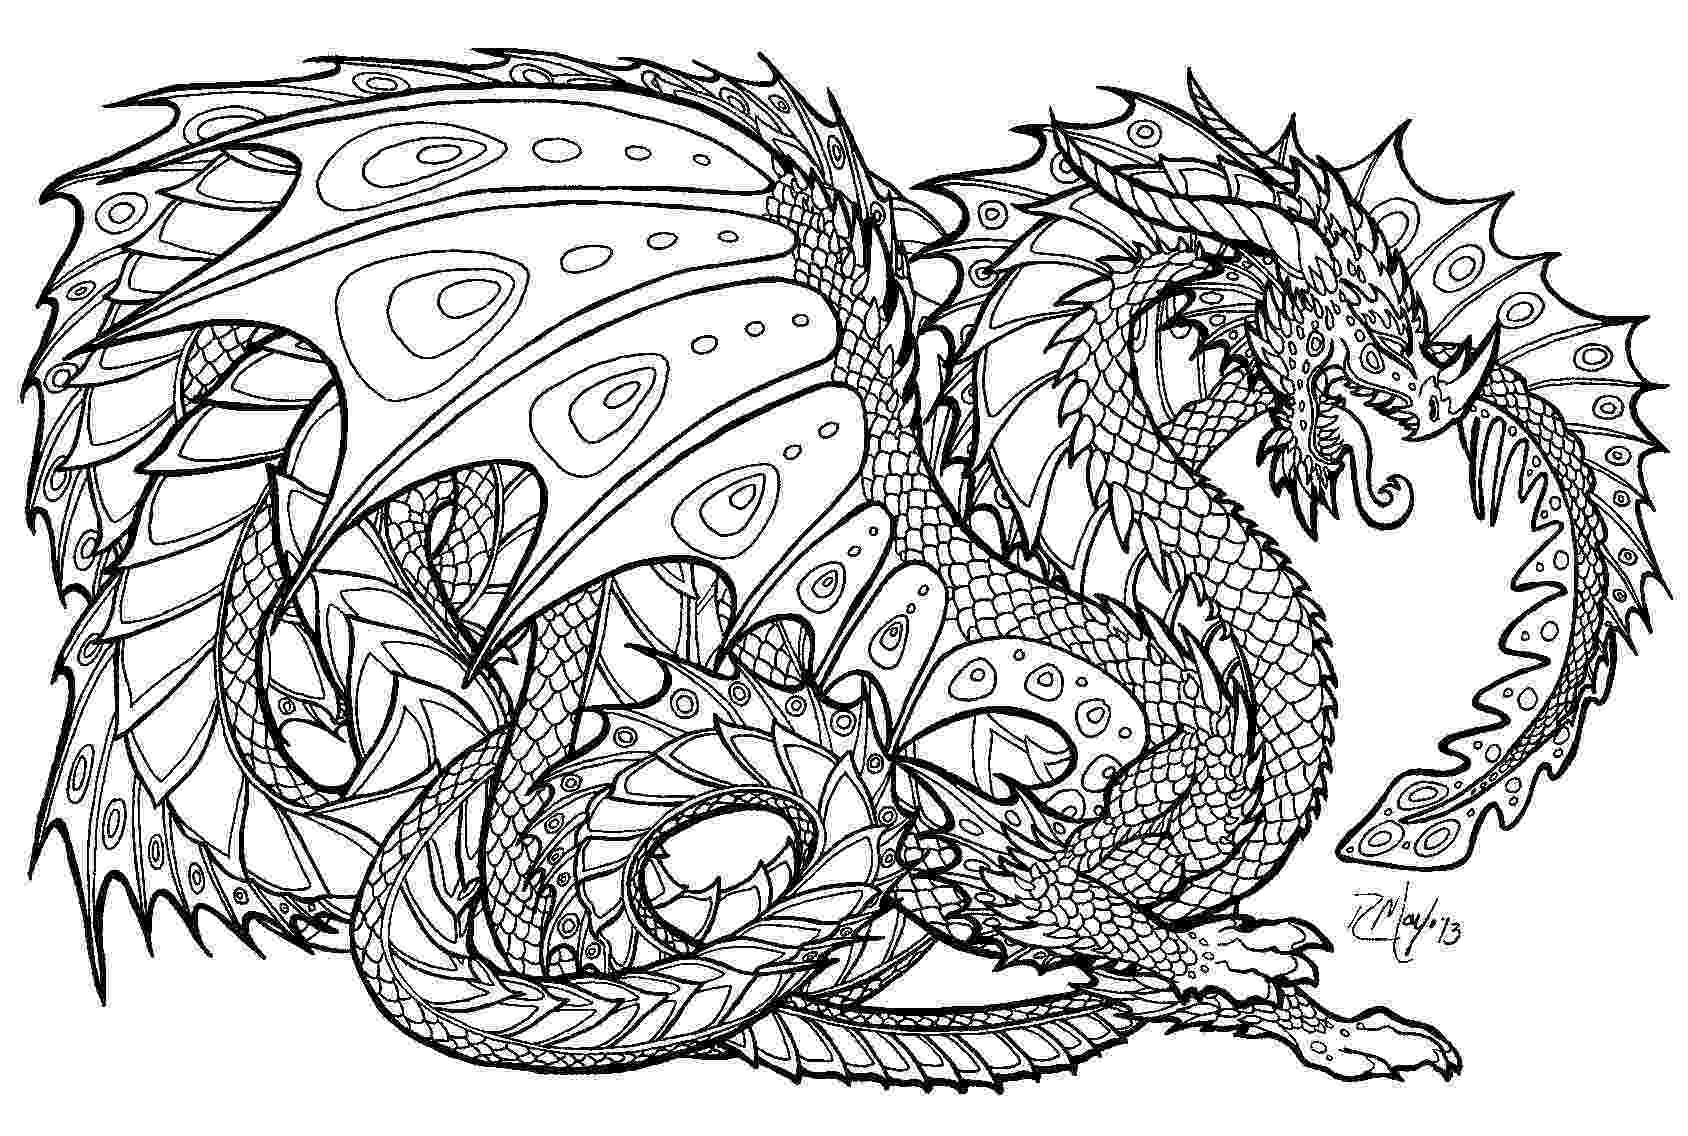 free printable detailed coloring pages detailed coloring pages to download and print for free free detailed coloring pages printable